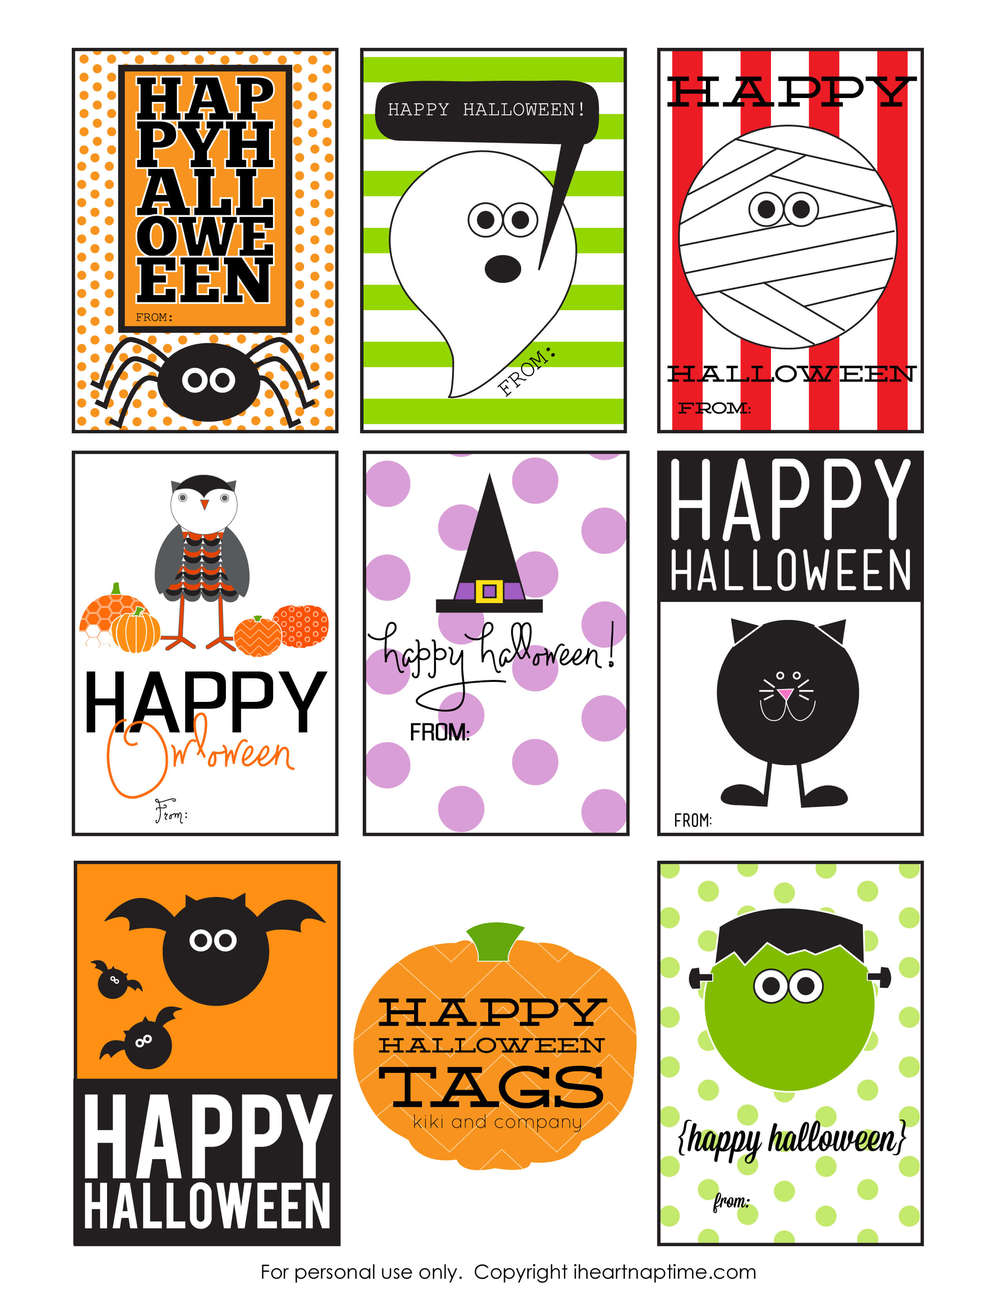 download your free tags here - Free Printables For Halloween